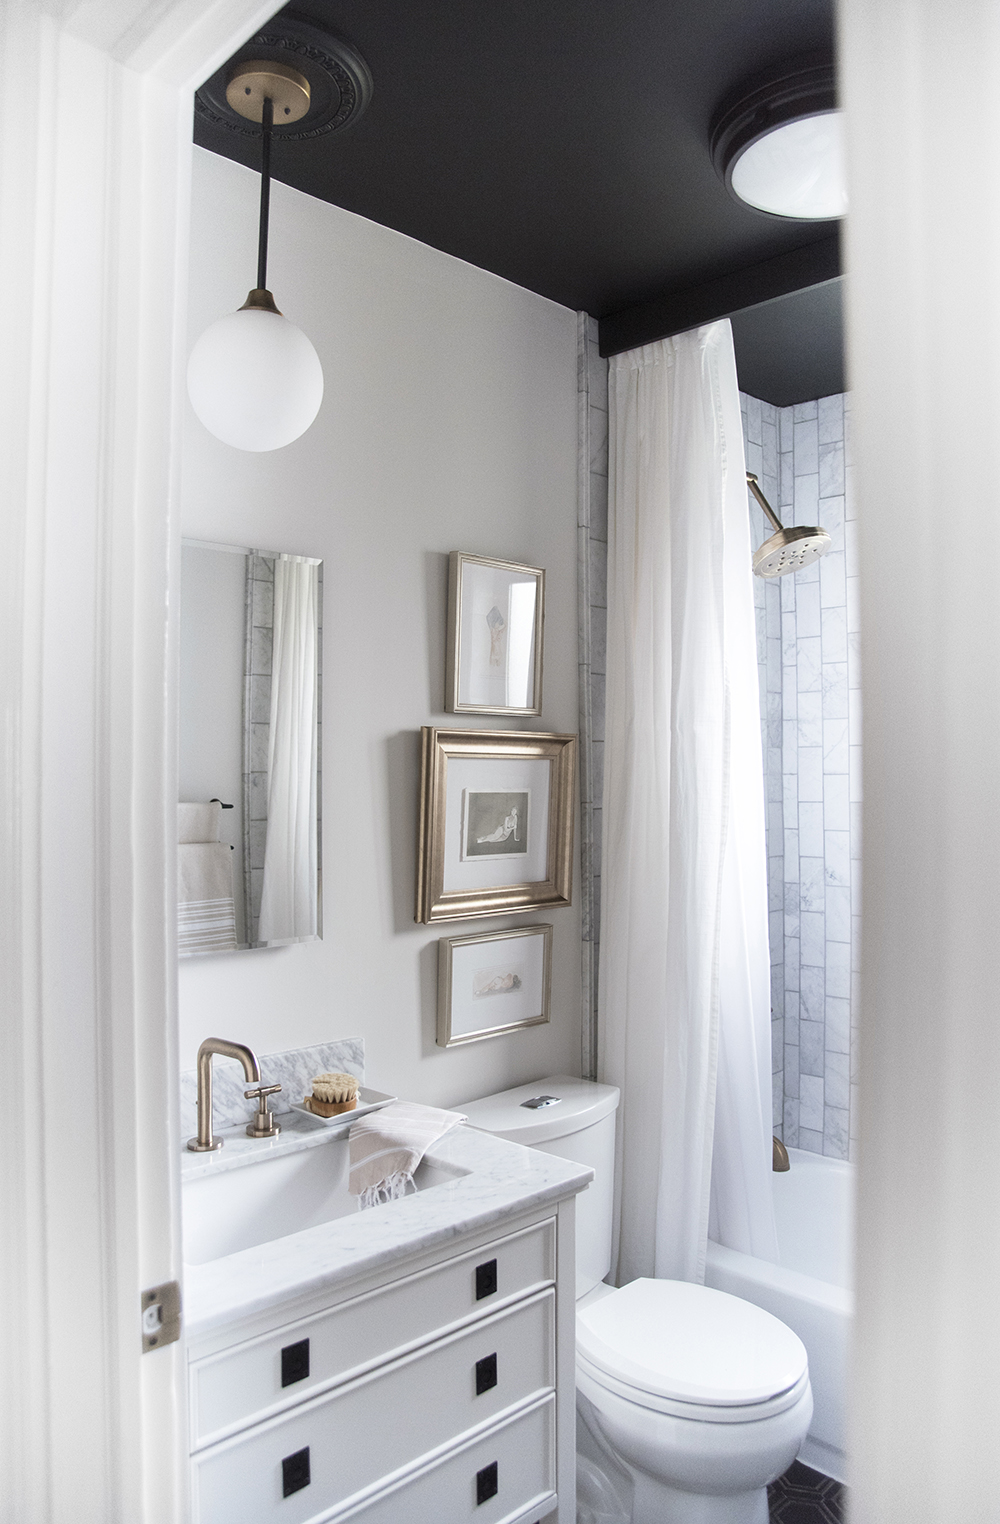 Room for Tuesday - Bathroom Reveal